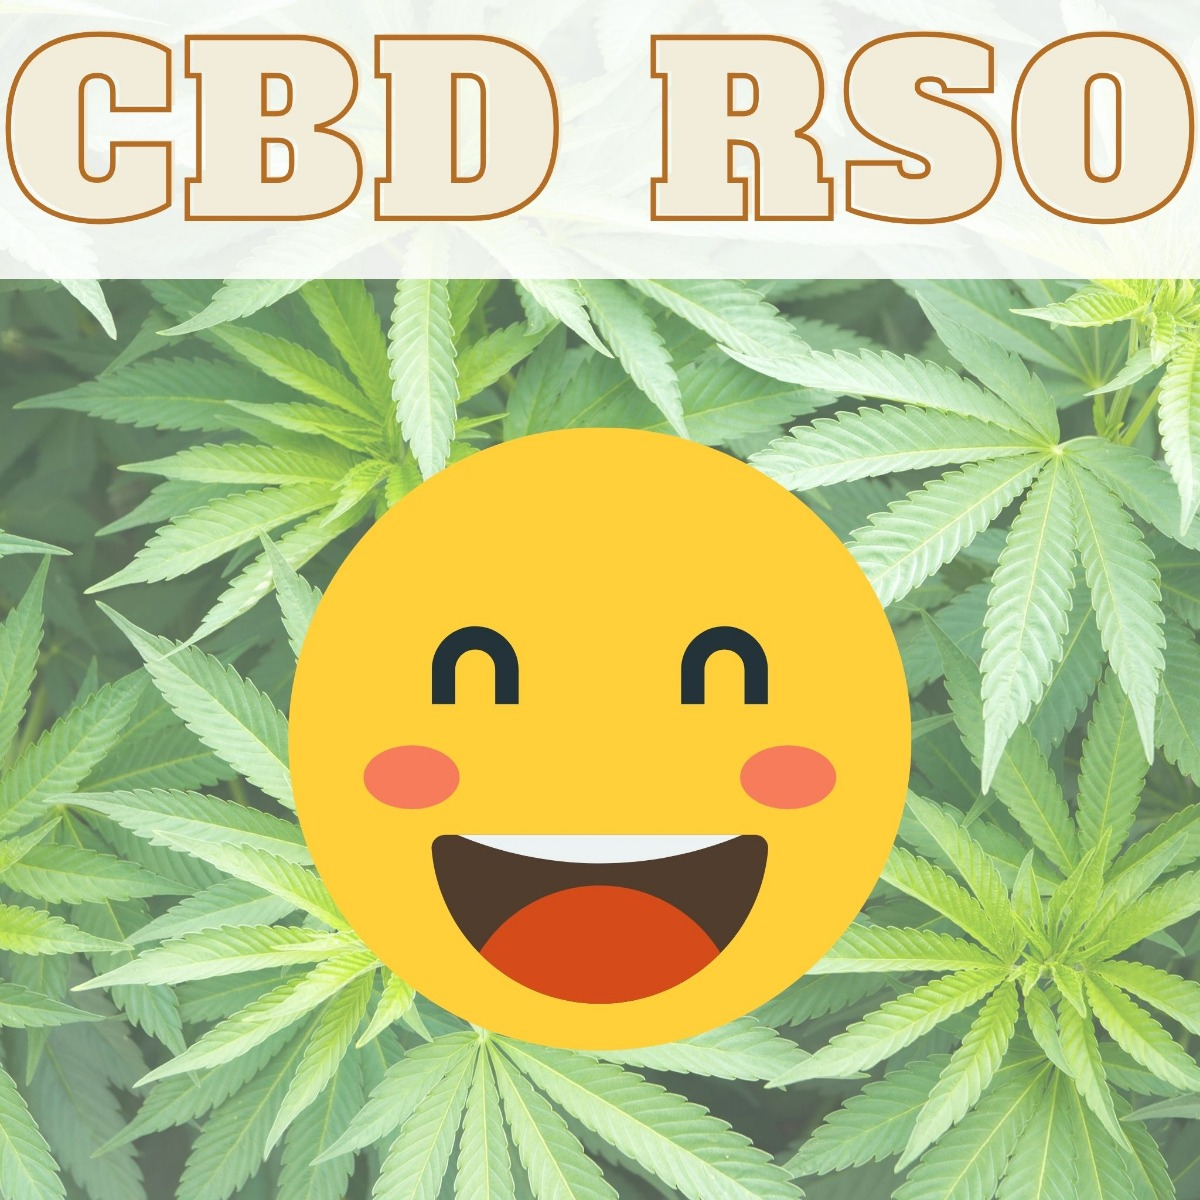 CBD RSO title with a cbd plant and smiley face in the background